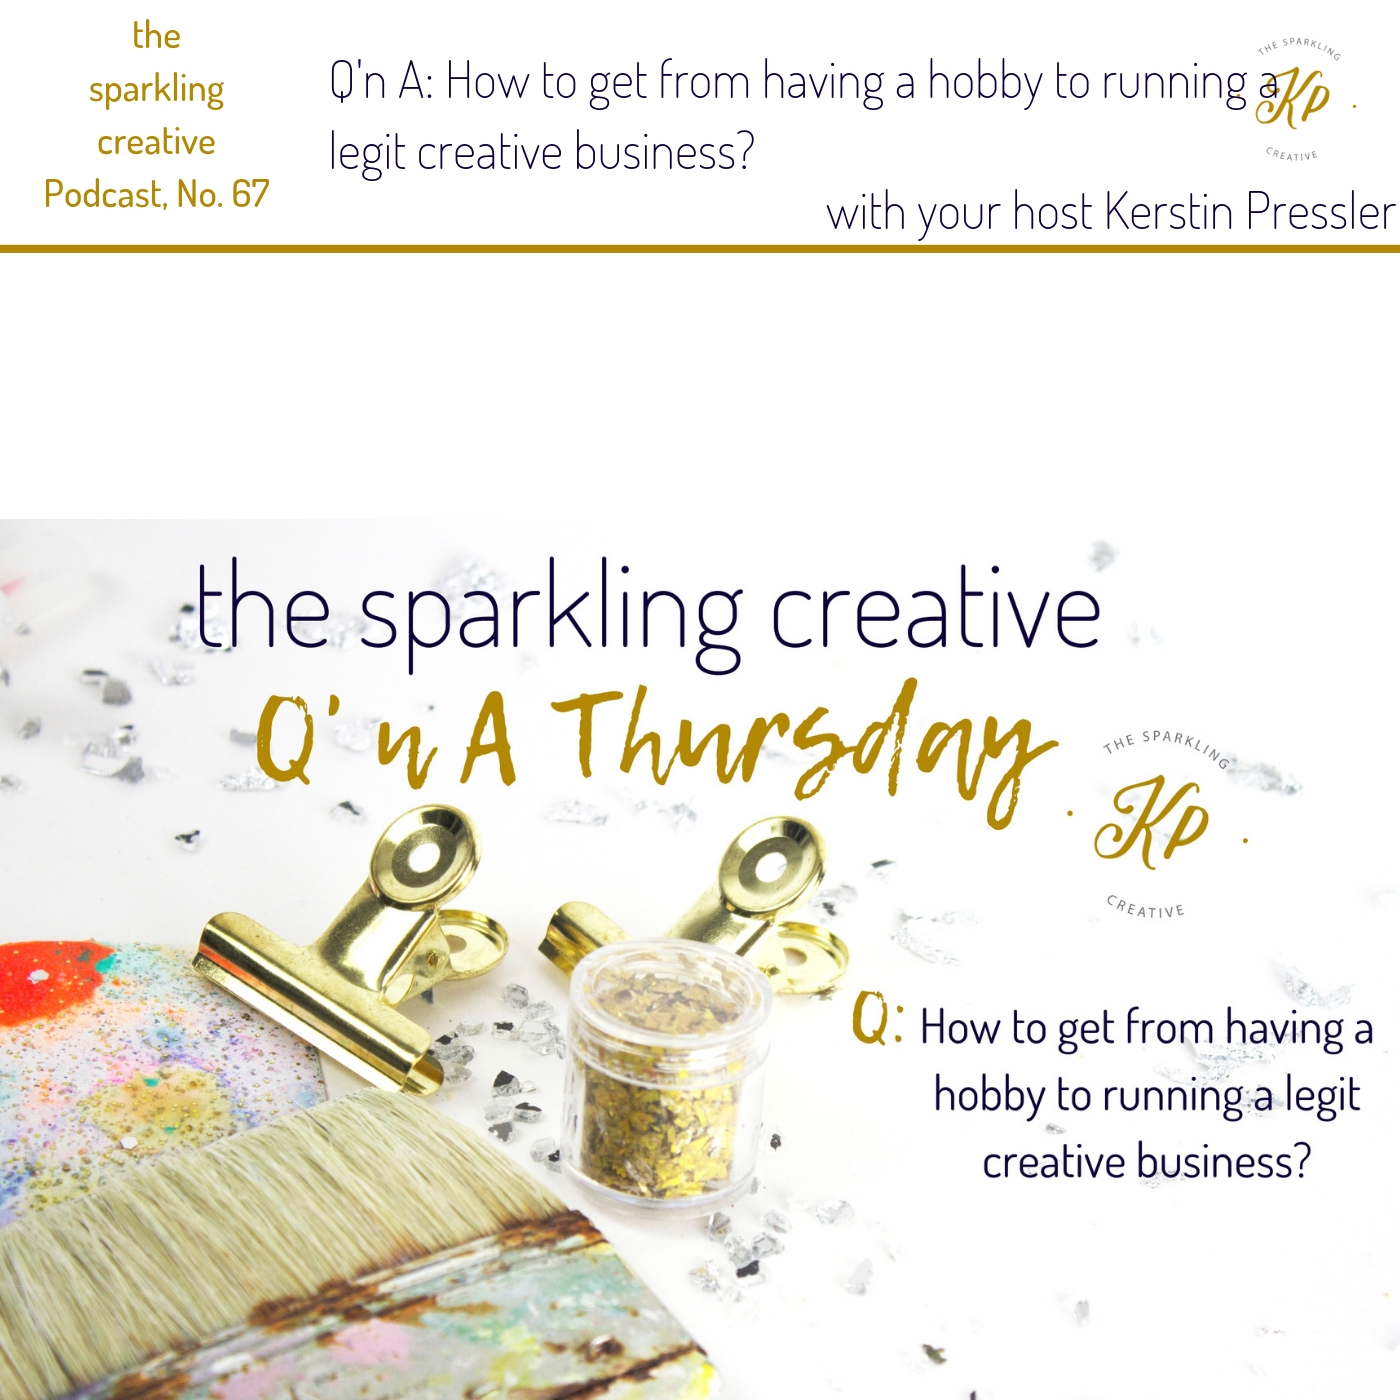 the sparkling creative Podcast,  Episode 67: Q'n A: How to get from having a hobby to running a legit creative business?, www.kerstinpressler.com/blog-2/episode67